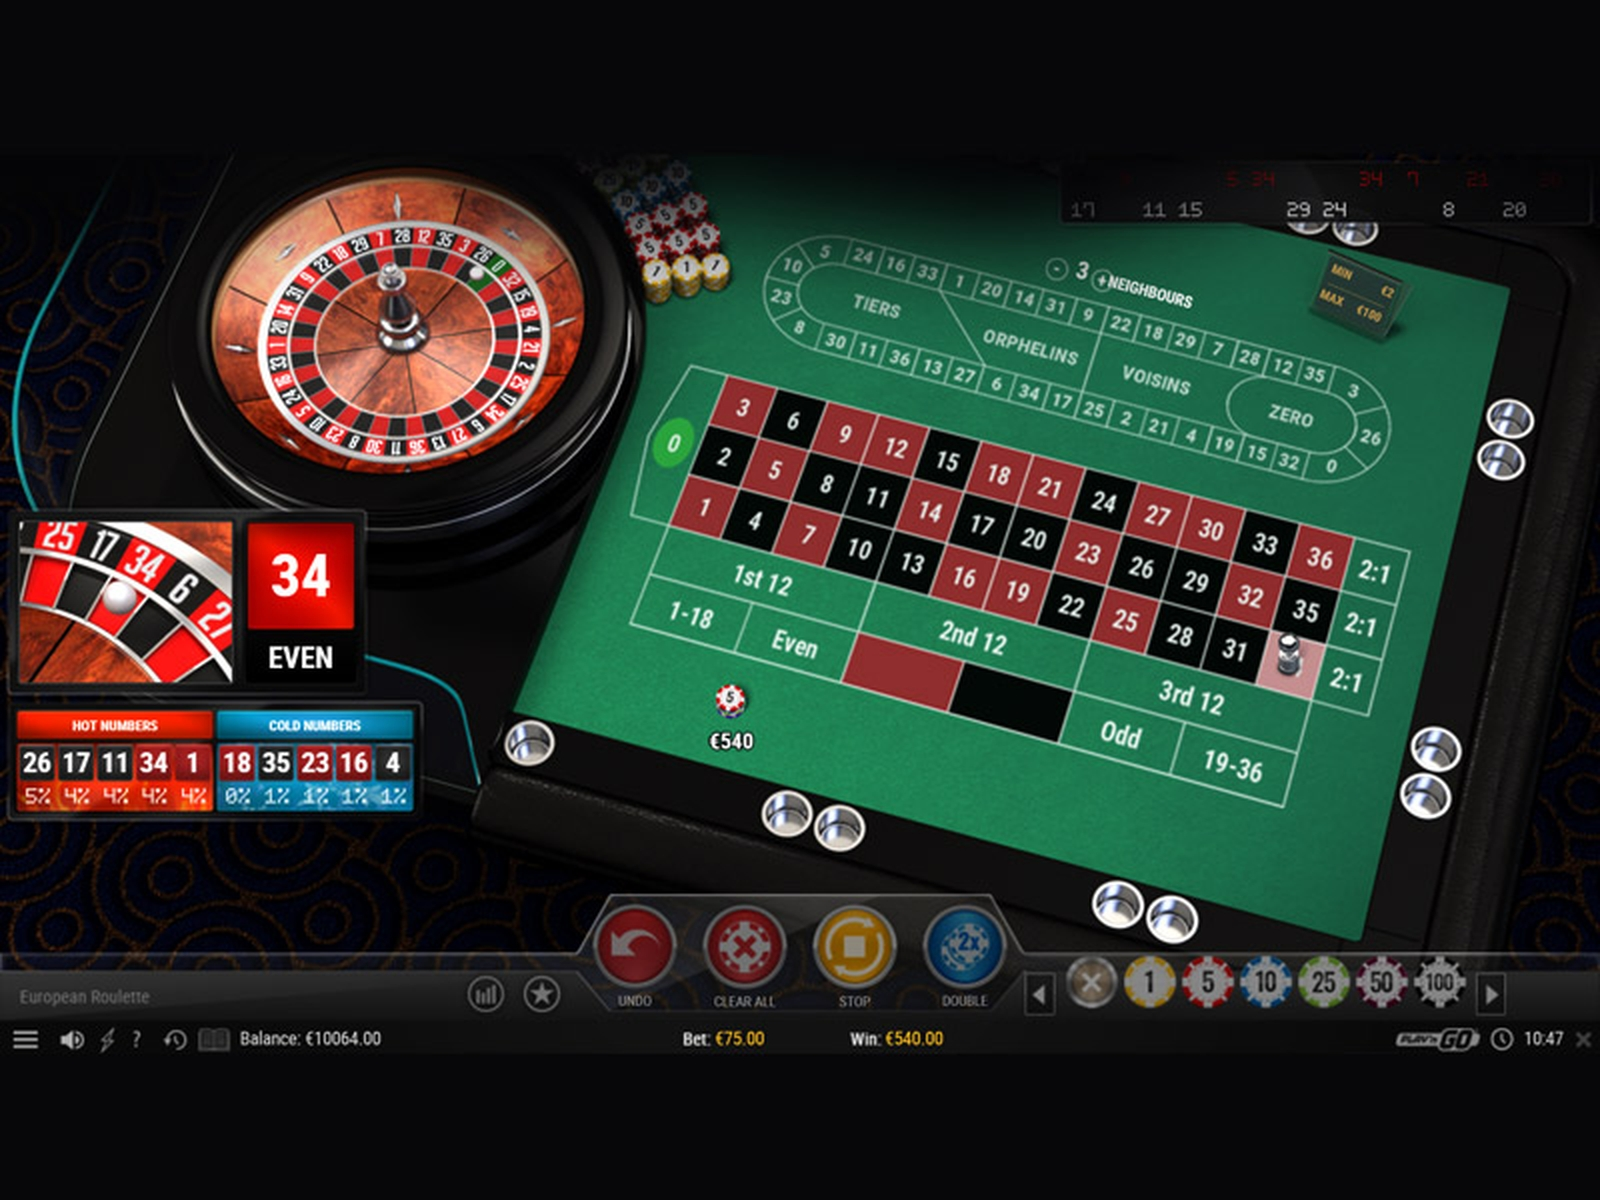 The European Roulette (Top Trend Gaming) Online Slot Demo Game by TOP TREND GAMING